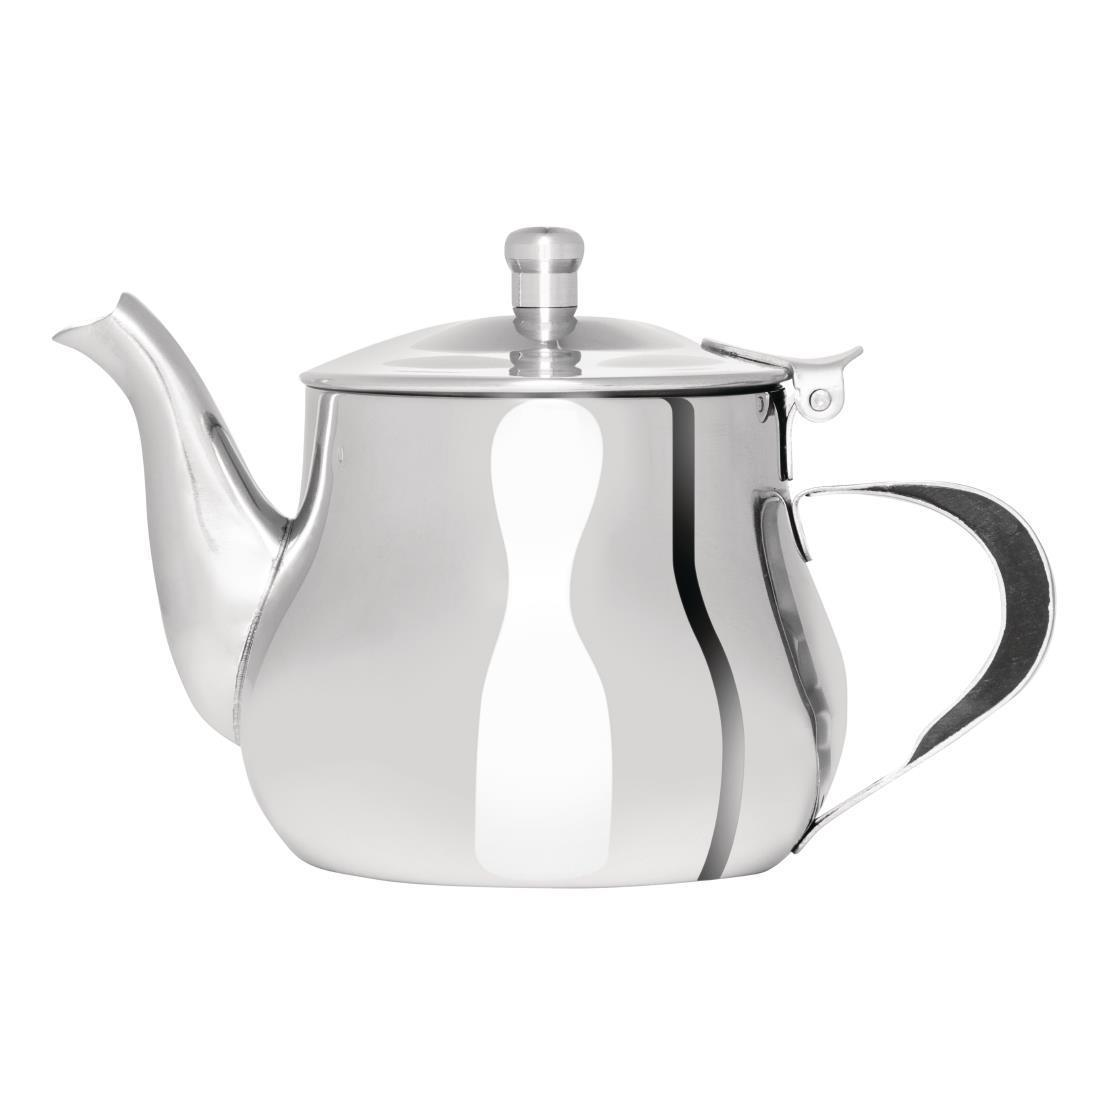 Olympia Arabian Stainless Steel Teapot 400ml